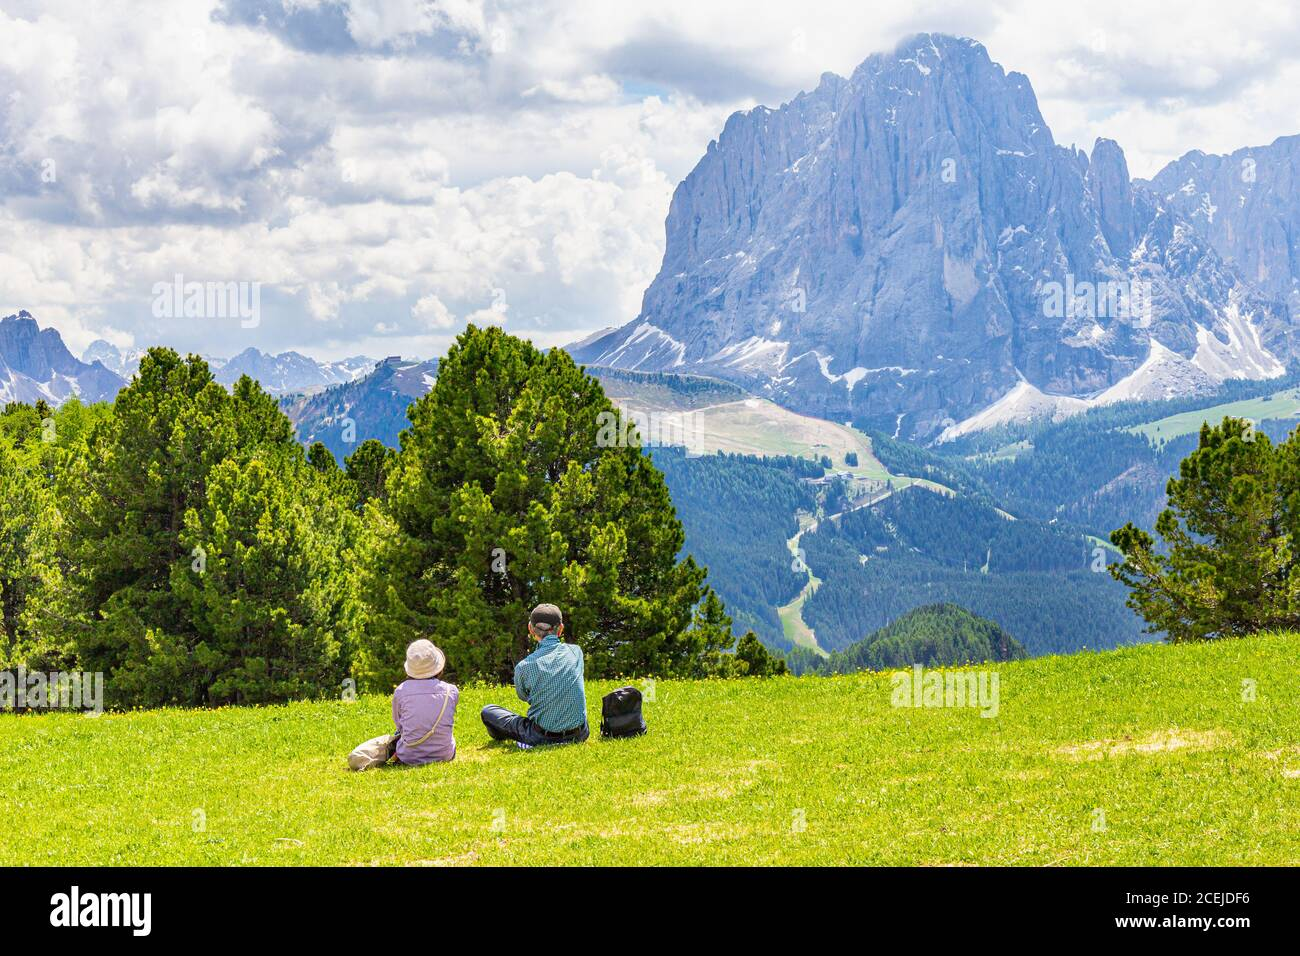 Two elderly people seen at Seceda peak in the background view of the mountain Sassolungo or Longkofel Traveling to village St. Cristina di Val Gardena Stock Photo